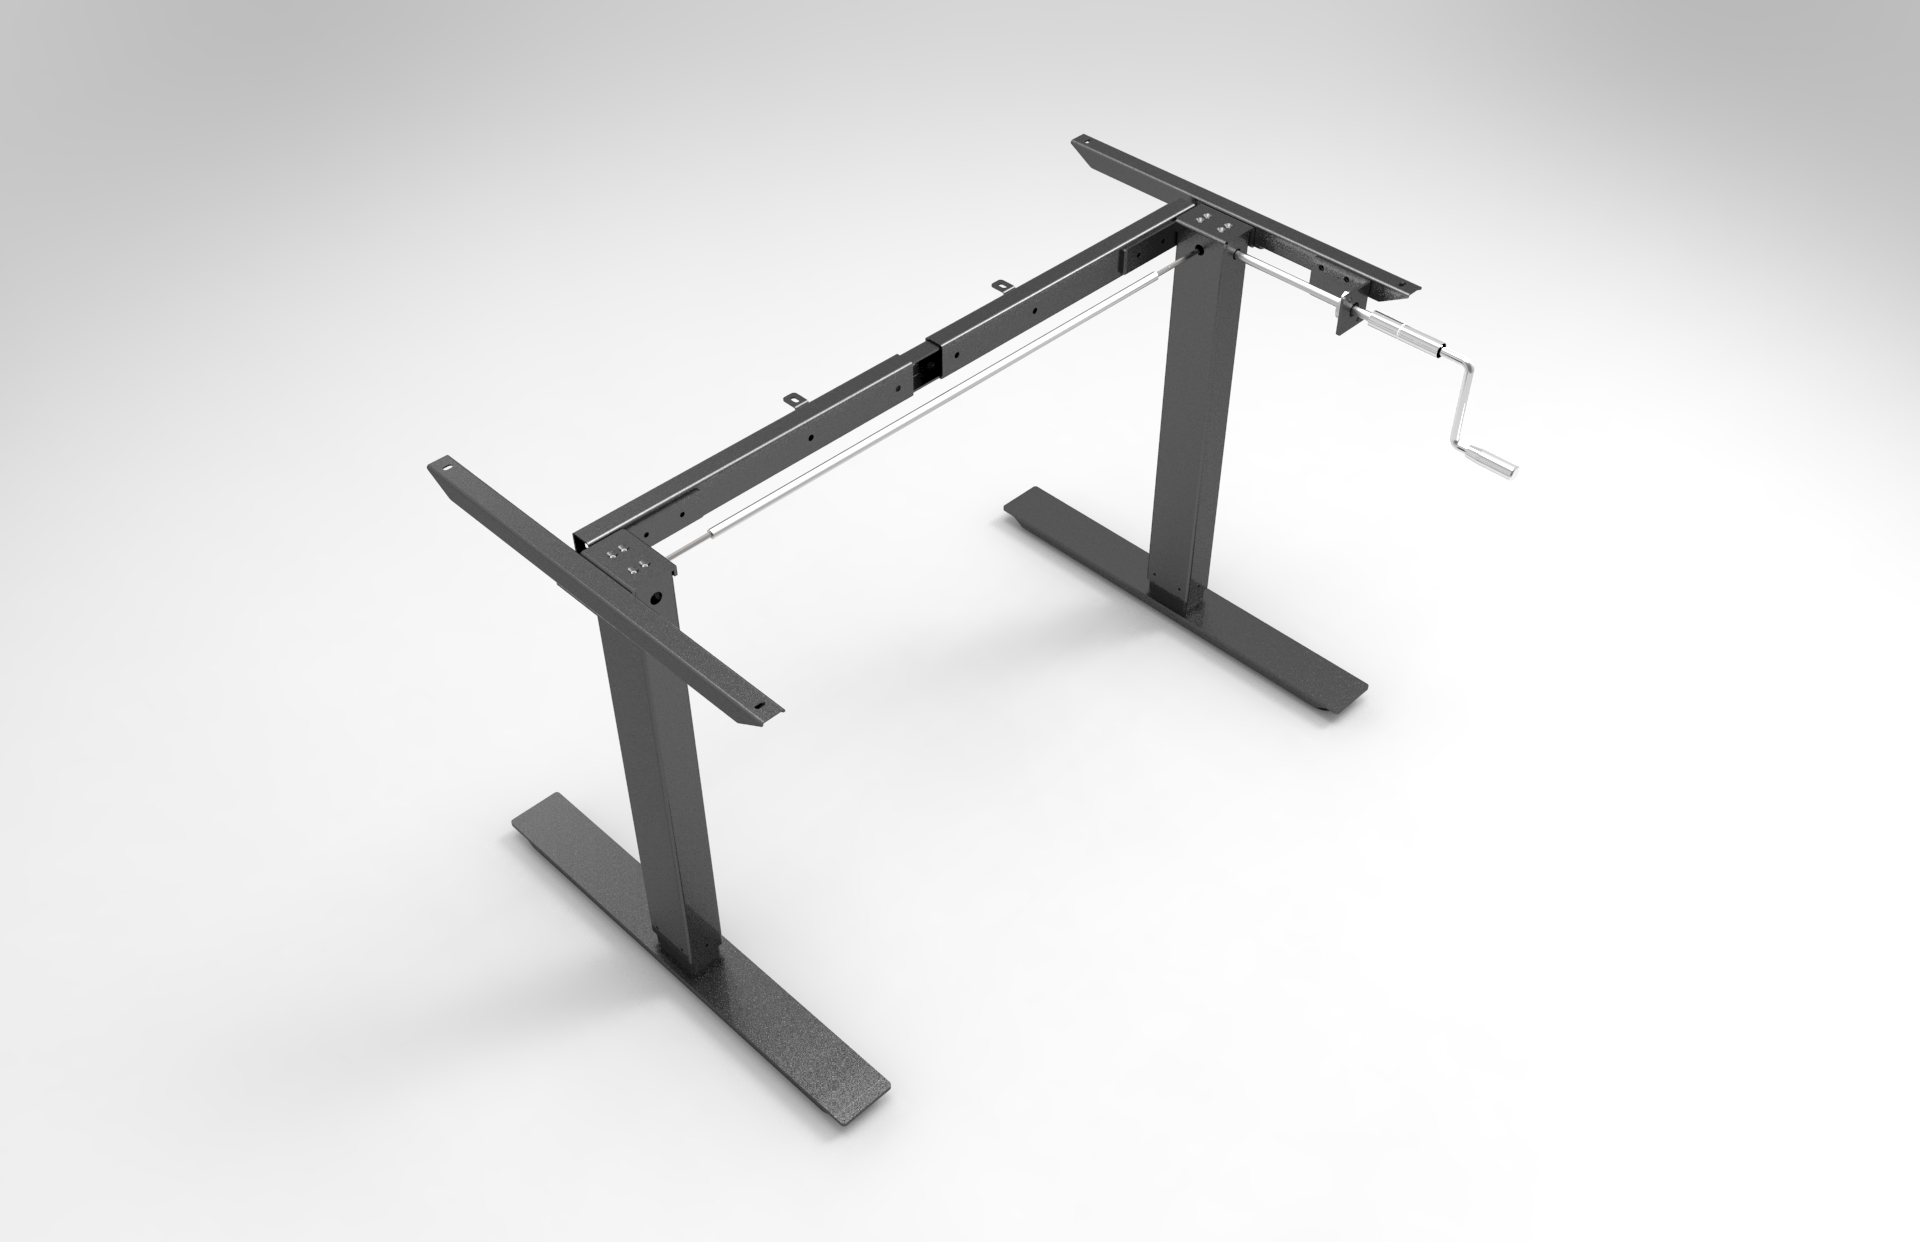 Hand crank height adjustable desk made in China